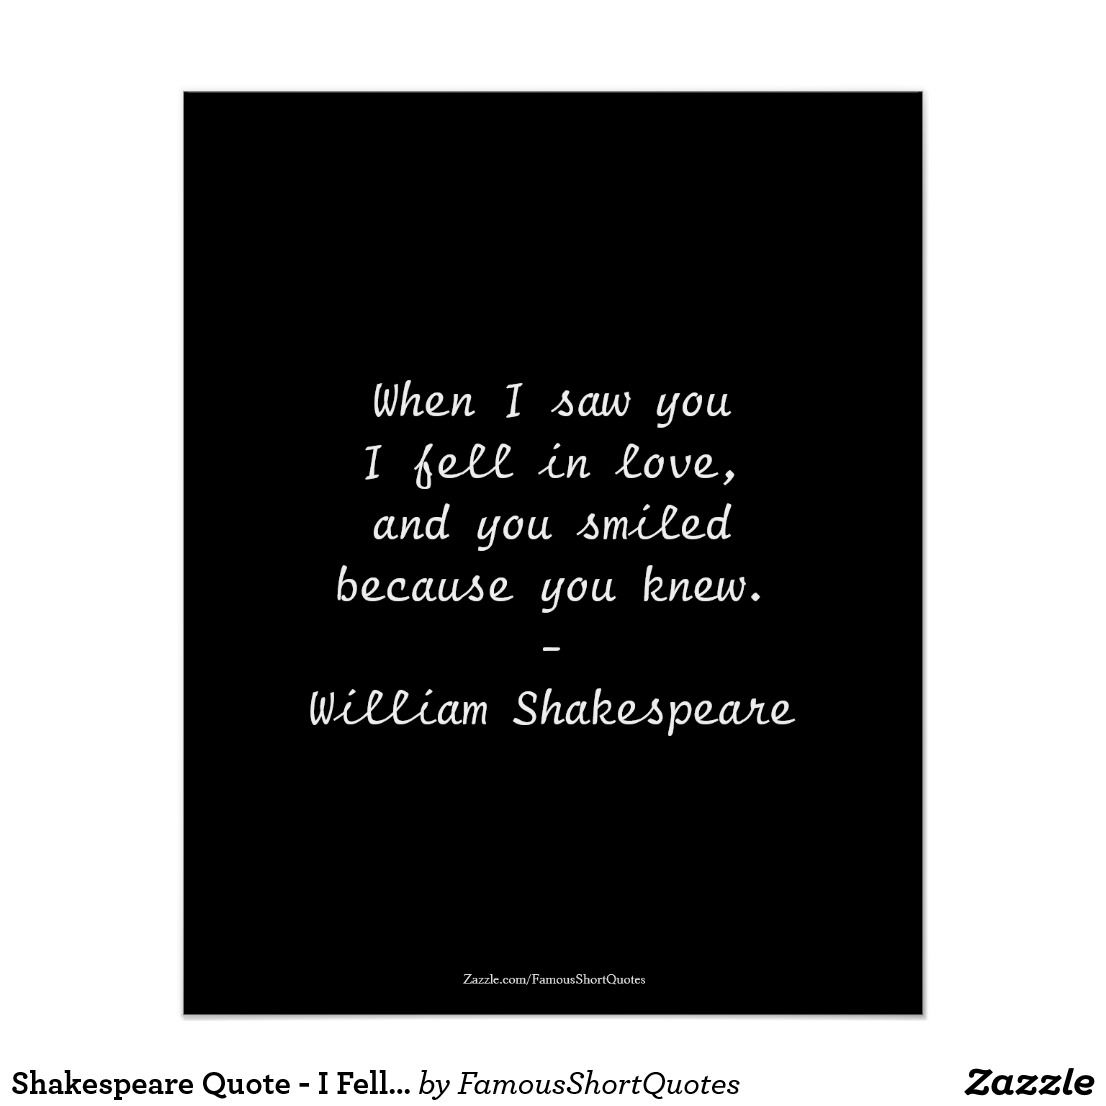 Shakespeare Quote I Fell In Love Poster Zazzle Com